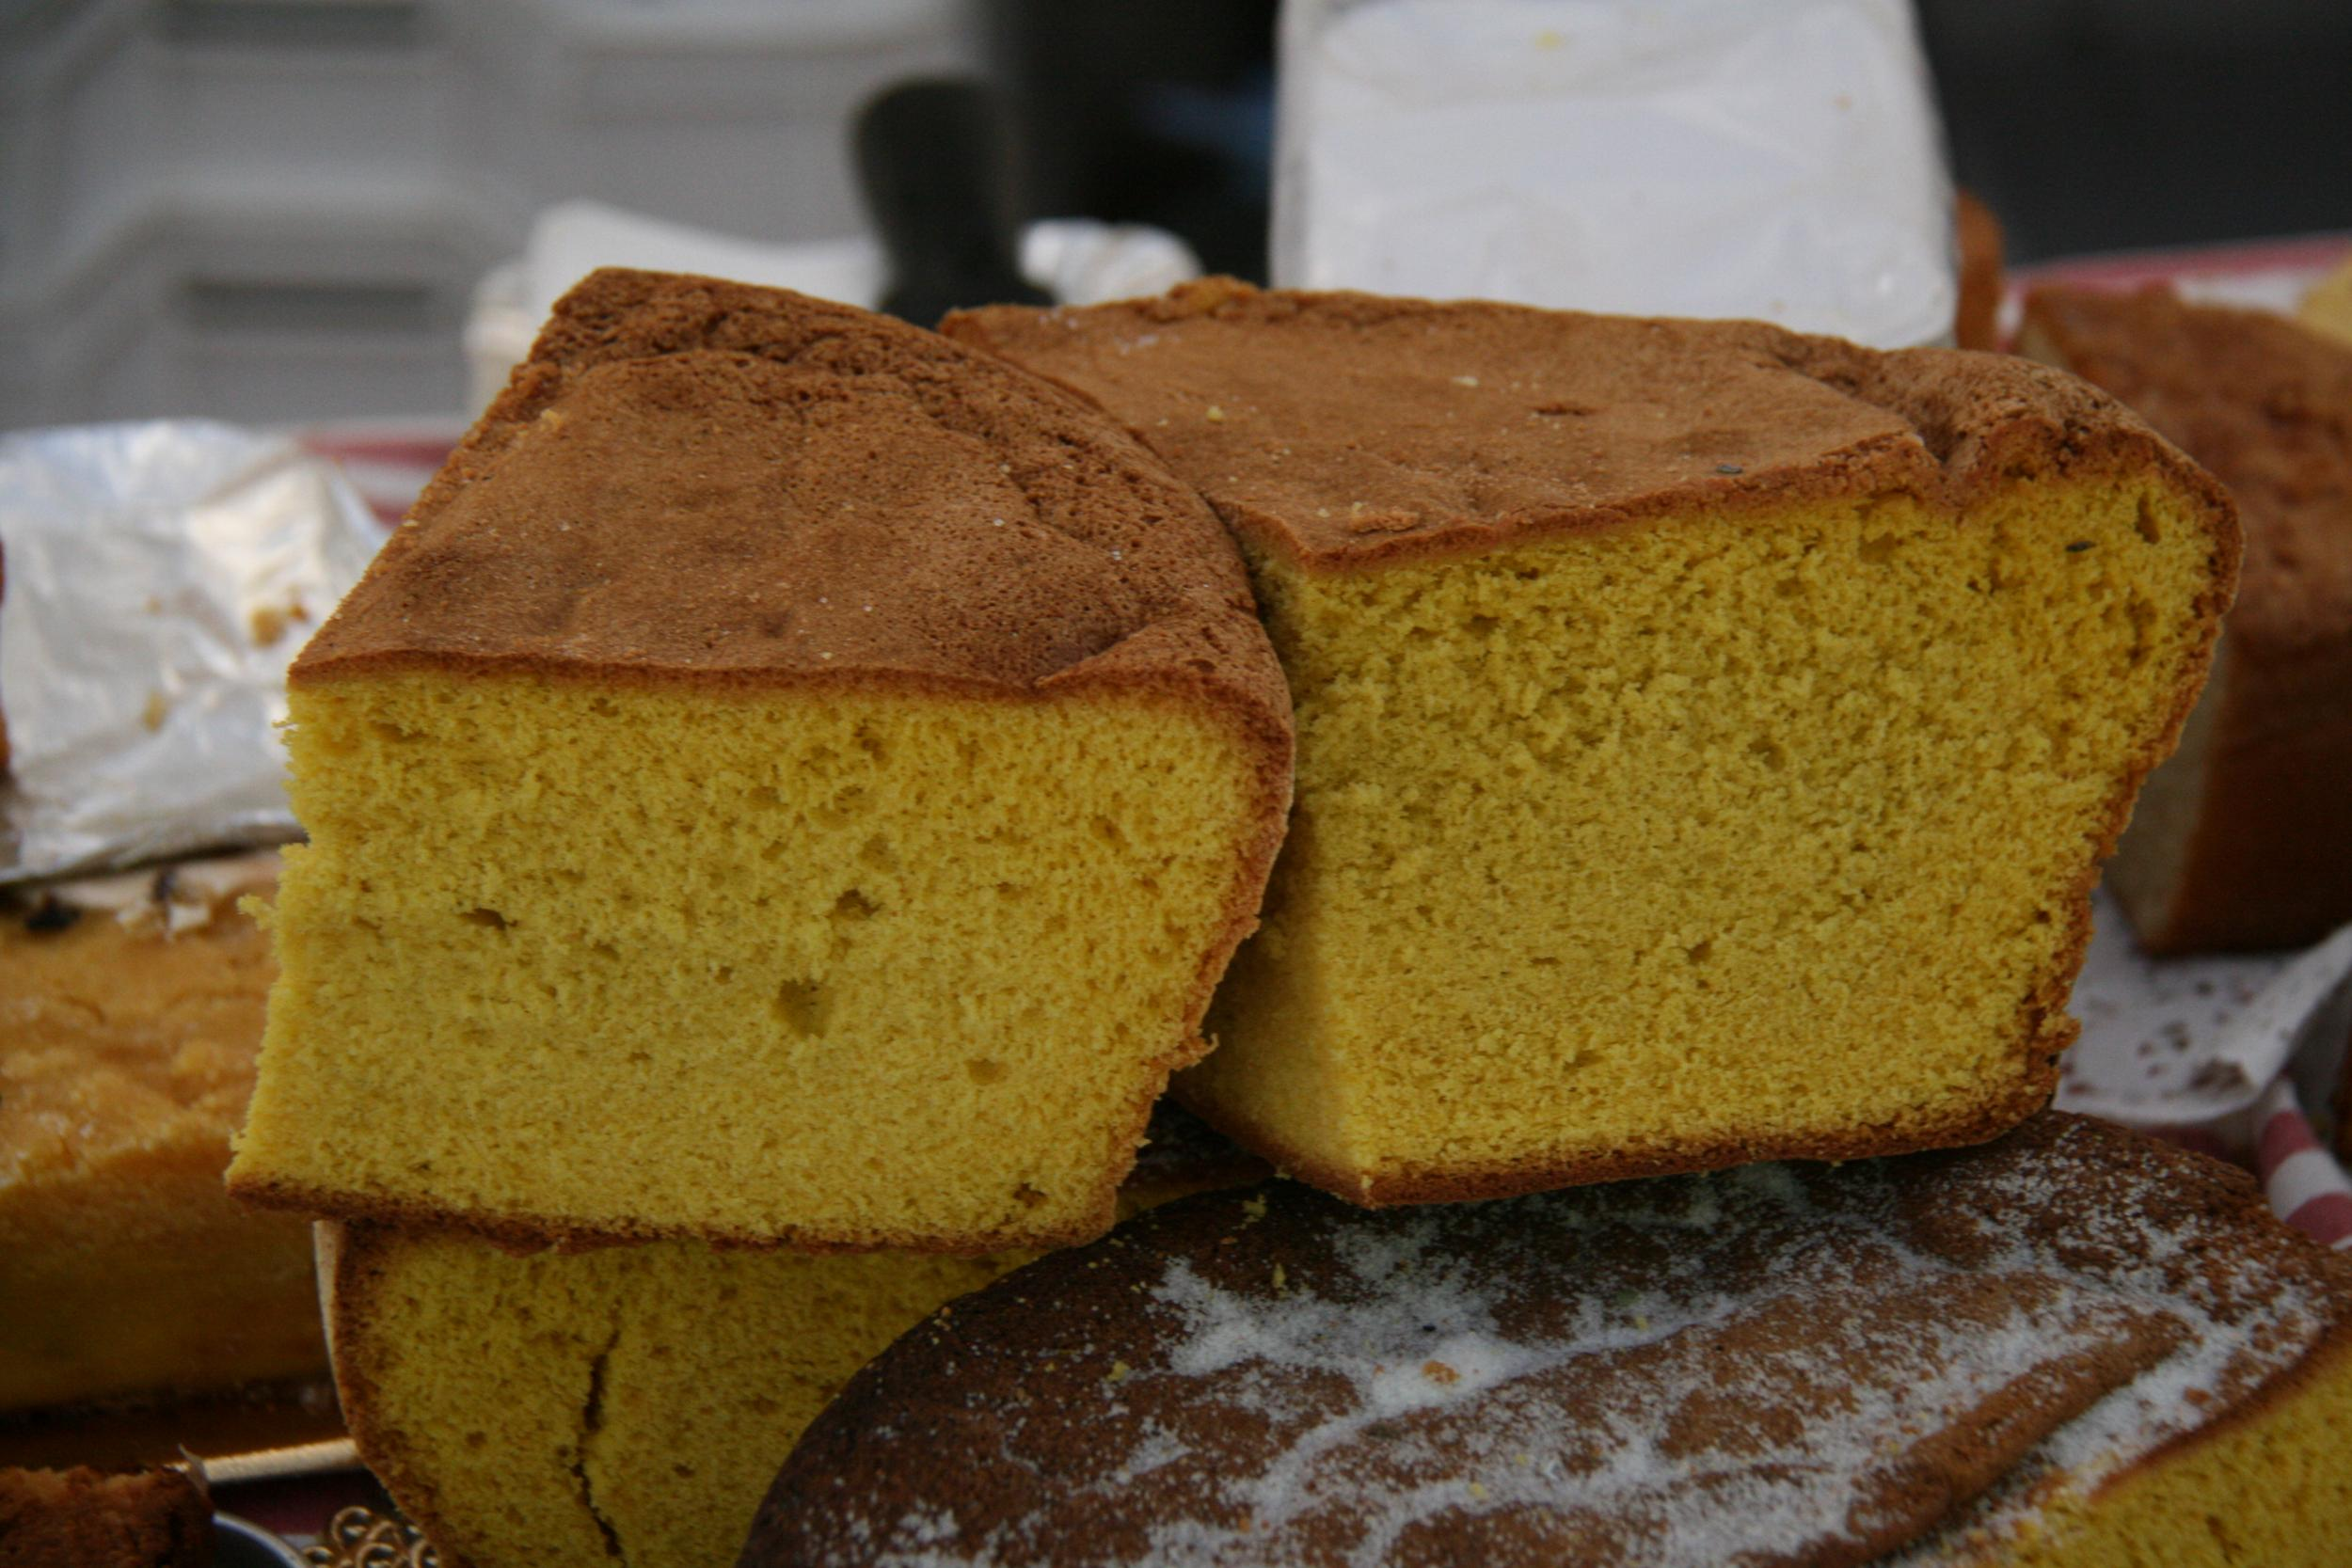 French yogurt cake recipe: How to make the simple cake that's a household standard on the continent